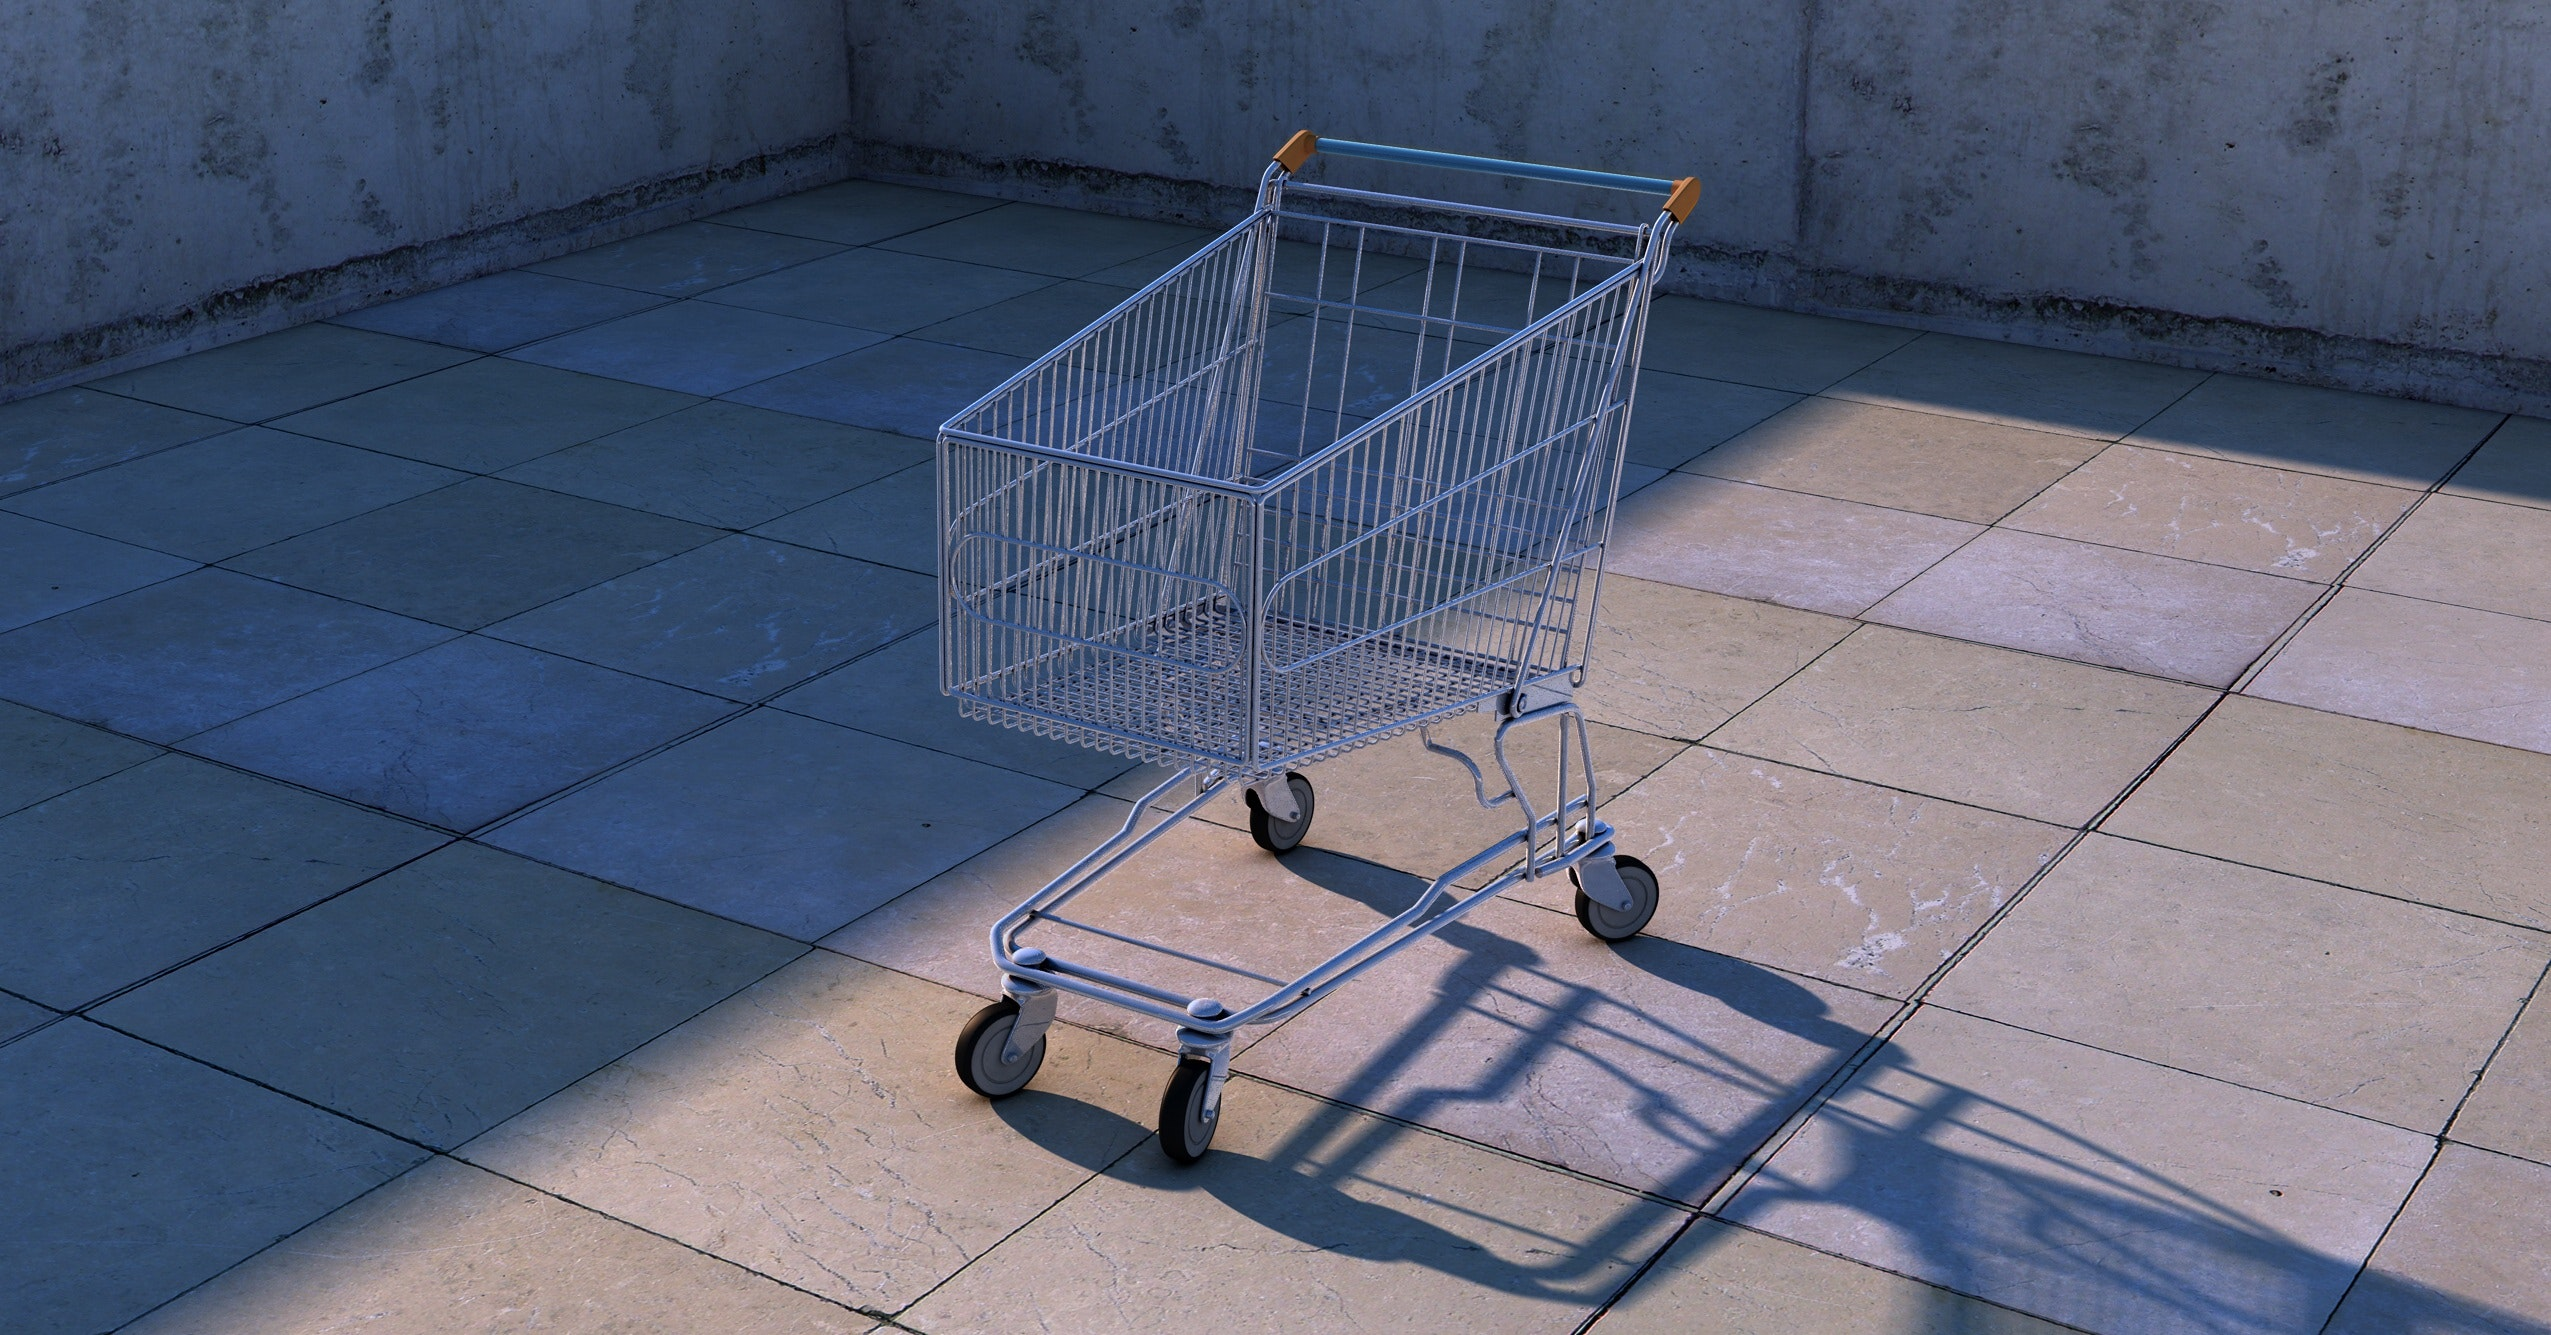 COVID-related Changes in Shopping Behavior